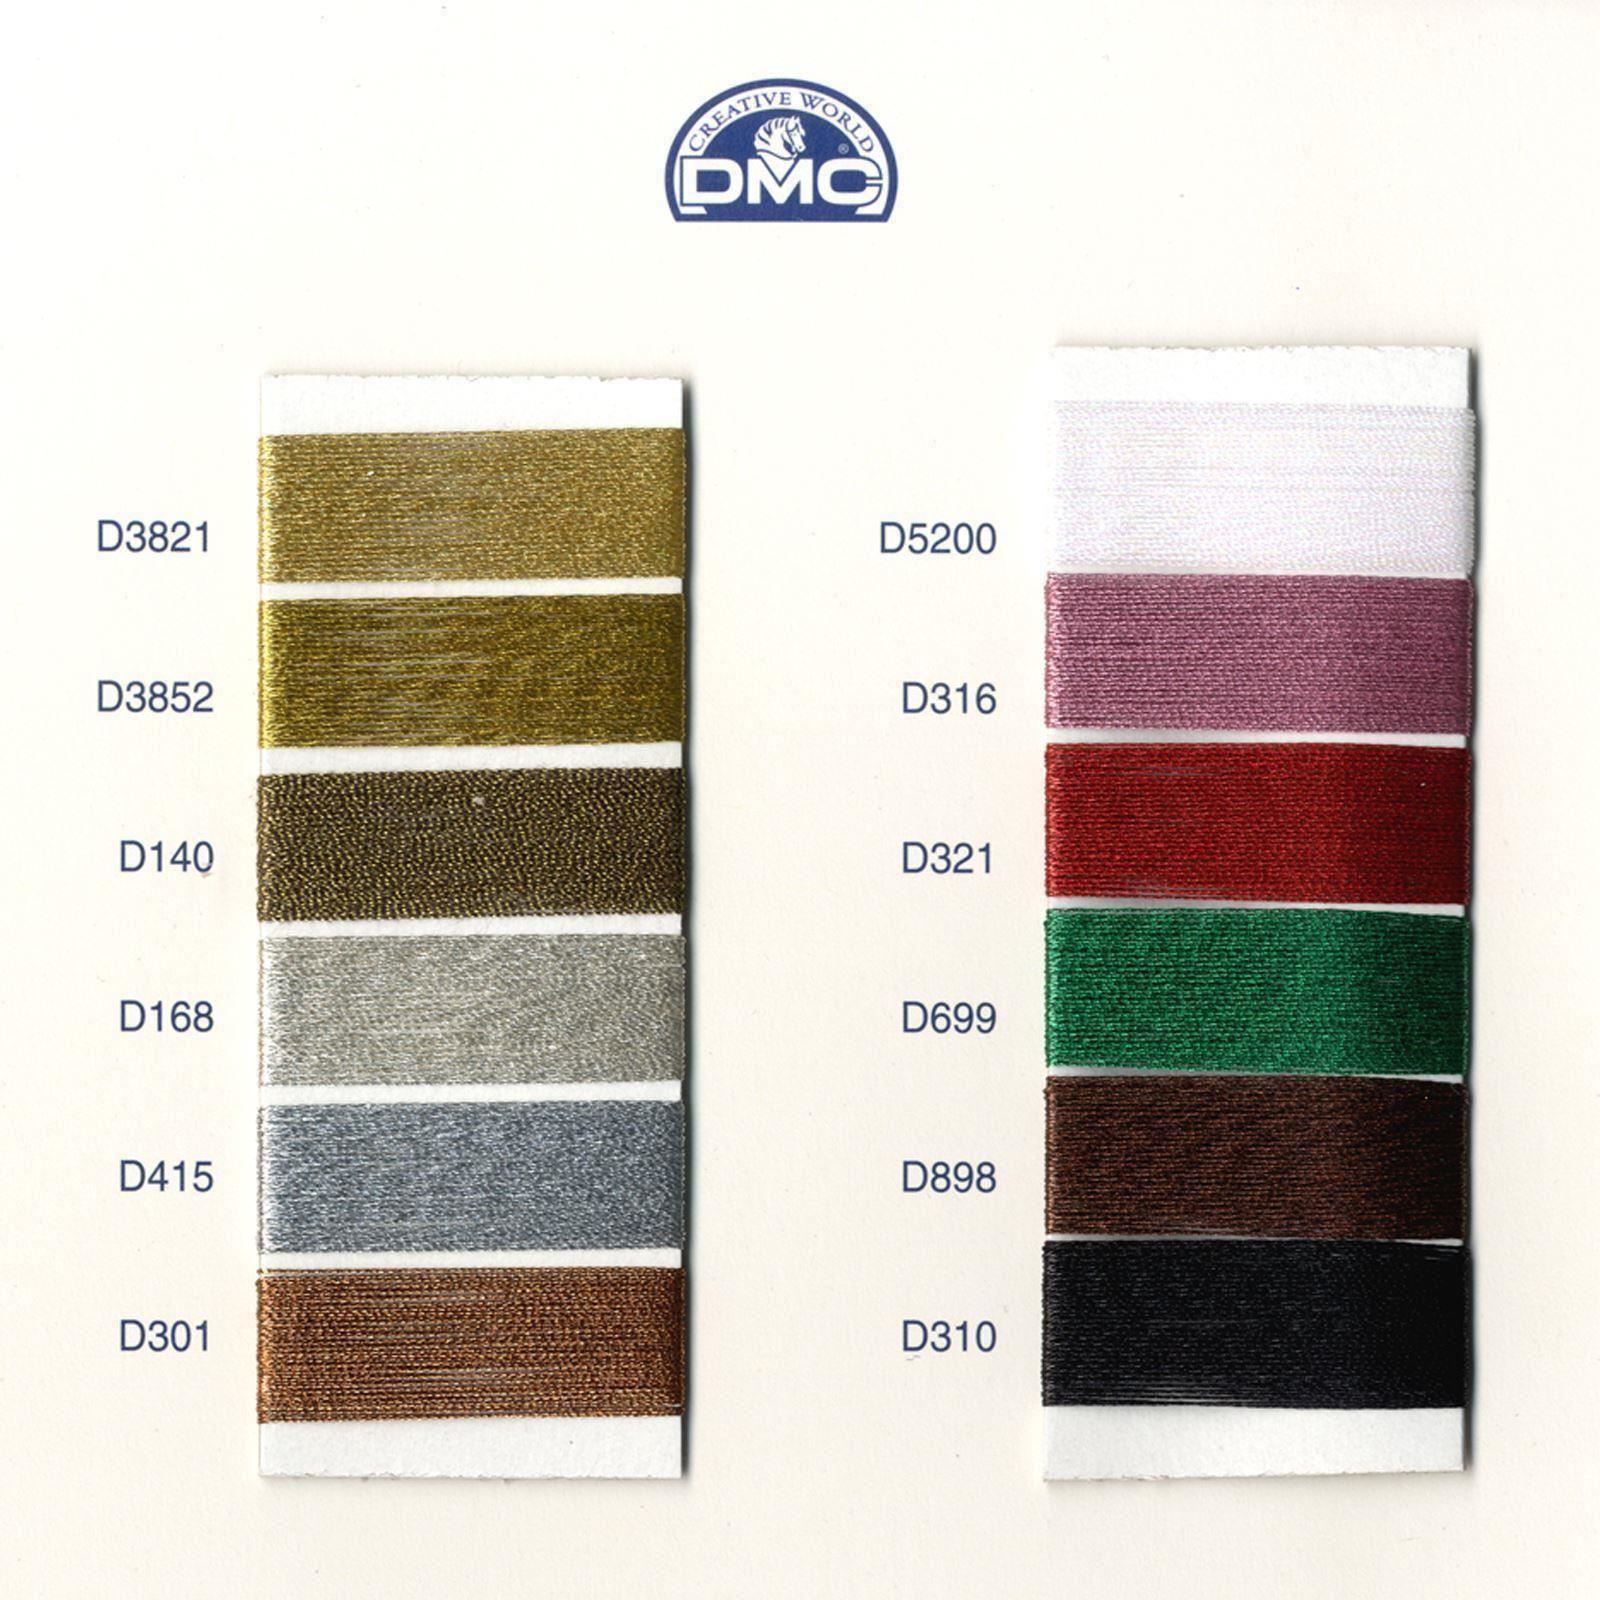 DMC-Diamant-Metallic-Embroidery-Thread-35m-Spool-Cross-Stitch thumbnail 50